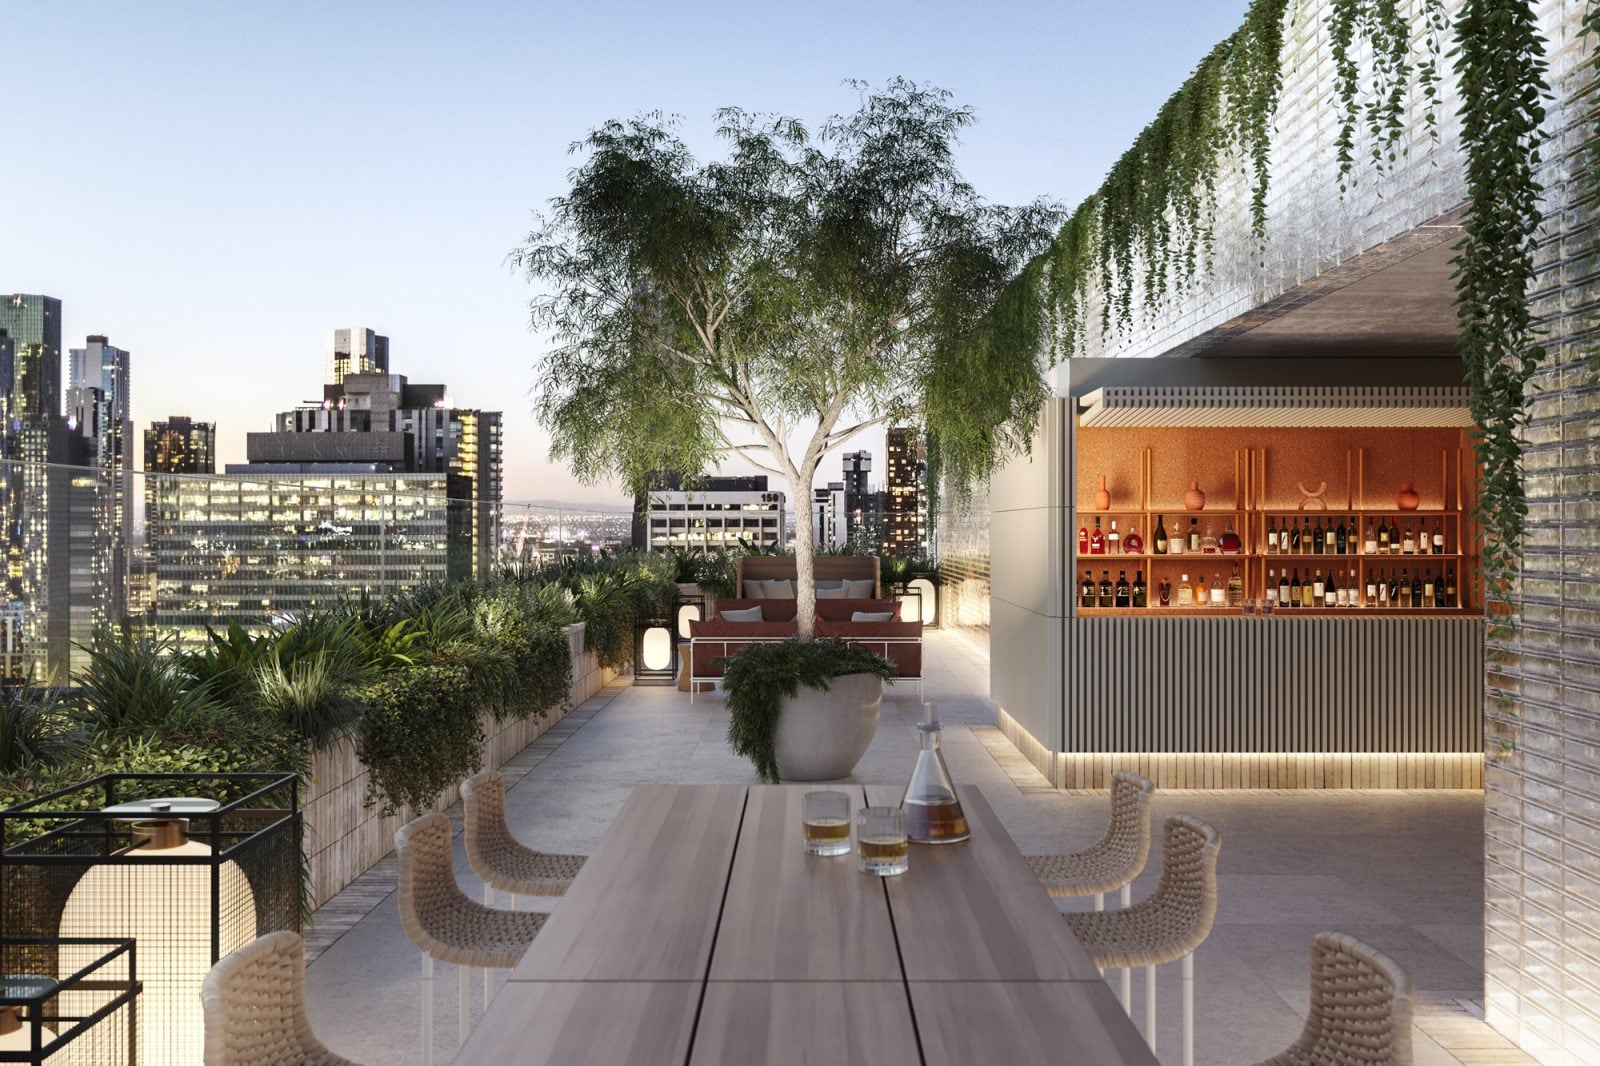 Artist's impression – Rooftop Terrace (Bar subject to planning approval)